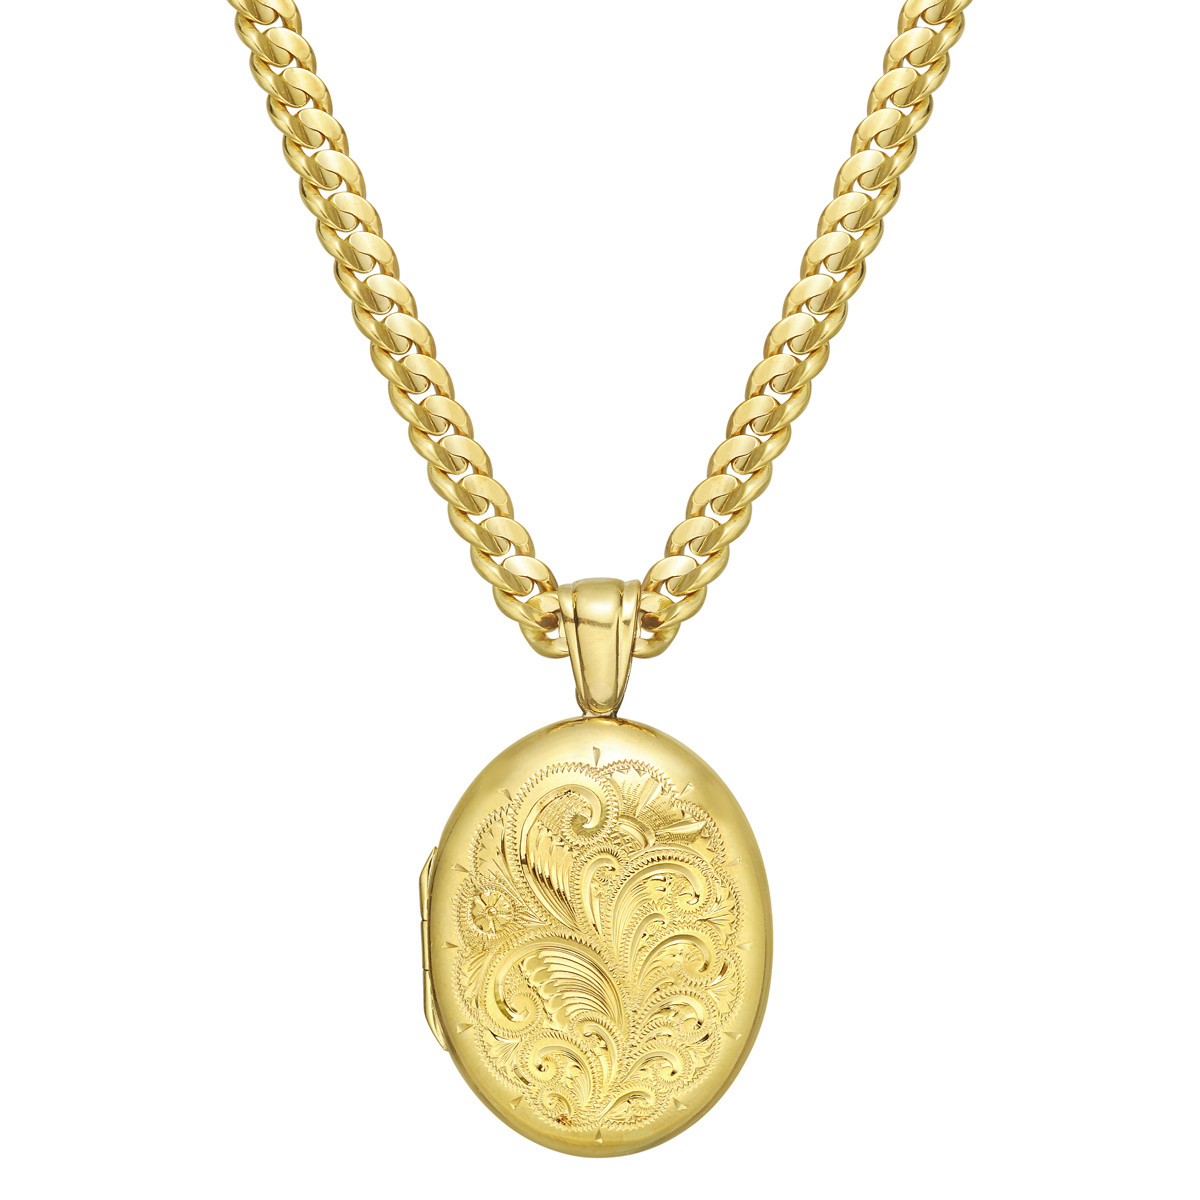 4ae1d6a22 Oval-shaped locket pendant in 18k yellow gold, the front engraved with an  elegant foliate scroll and back in polished gold, opening to reveal a place  for ...